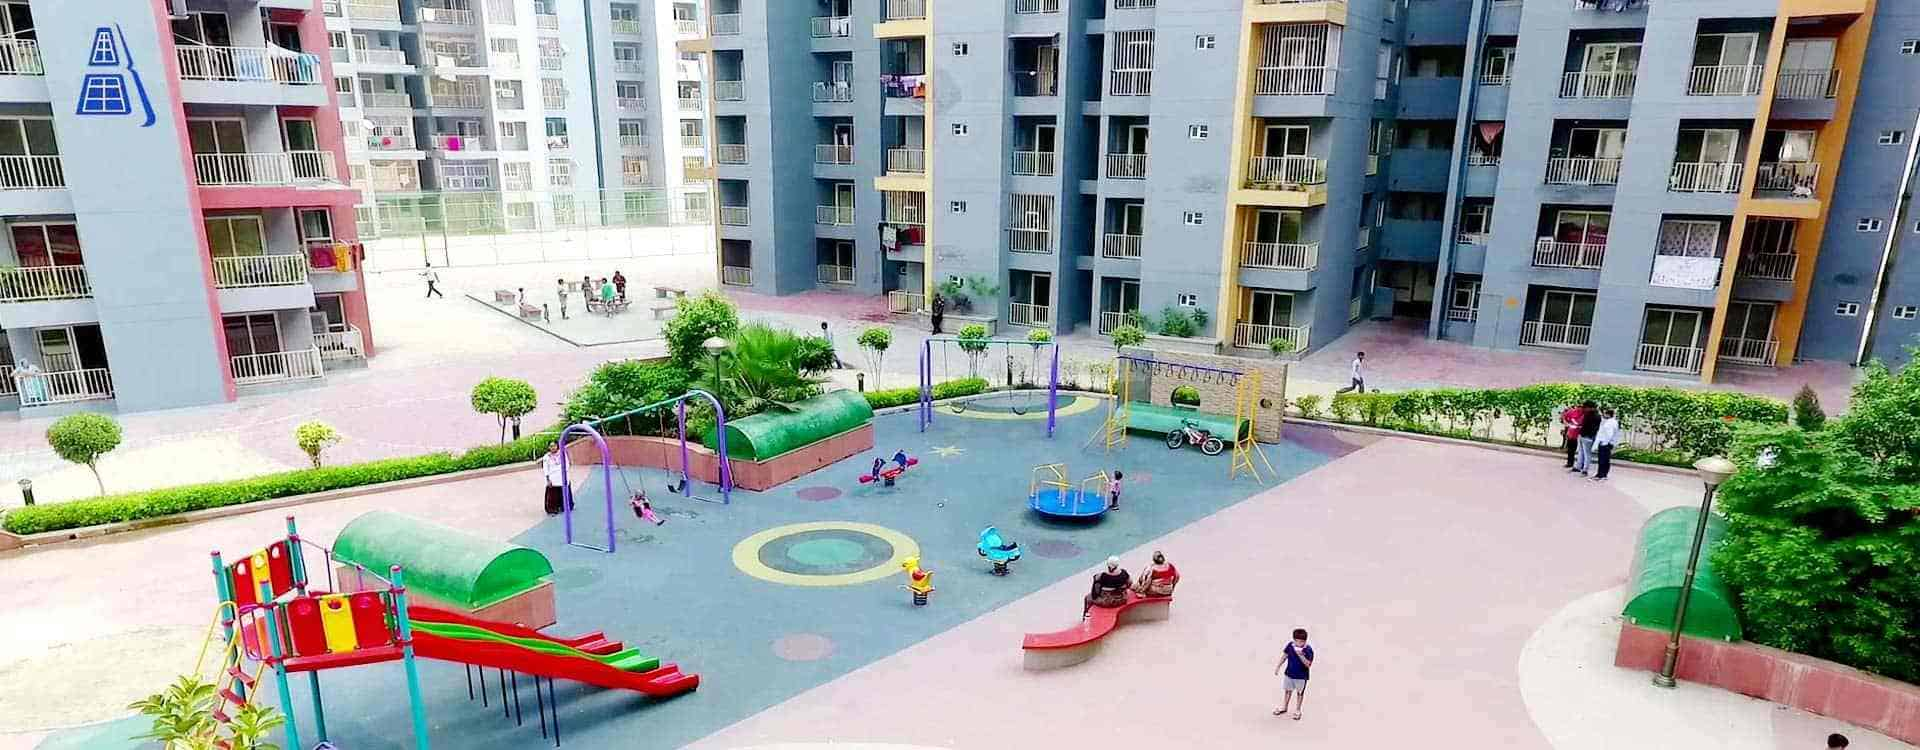 bharatcity main site